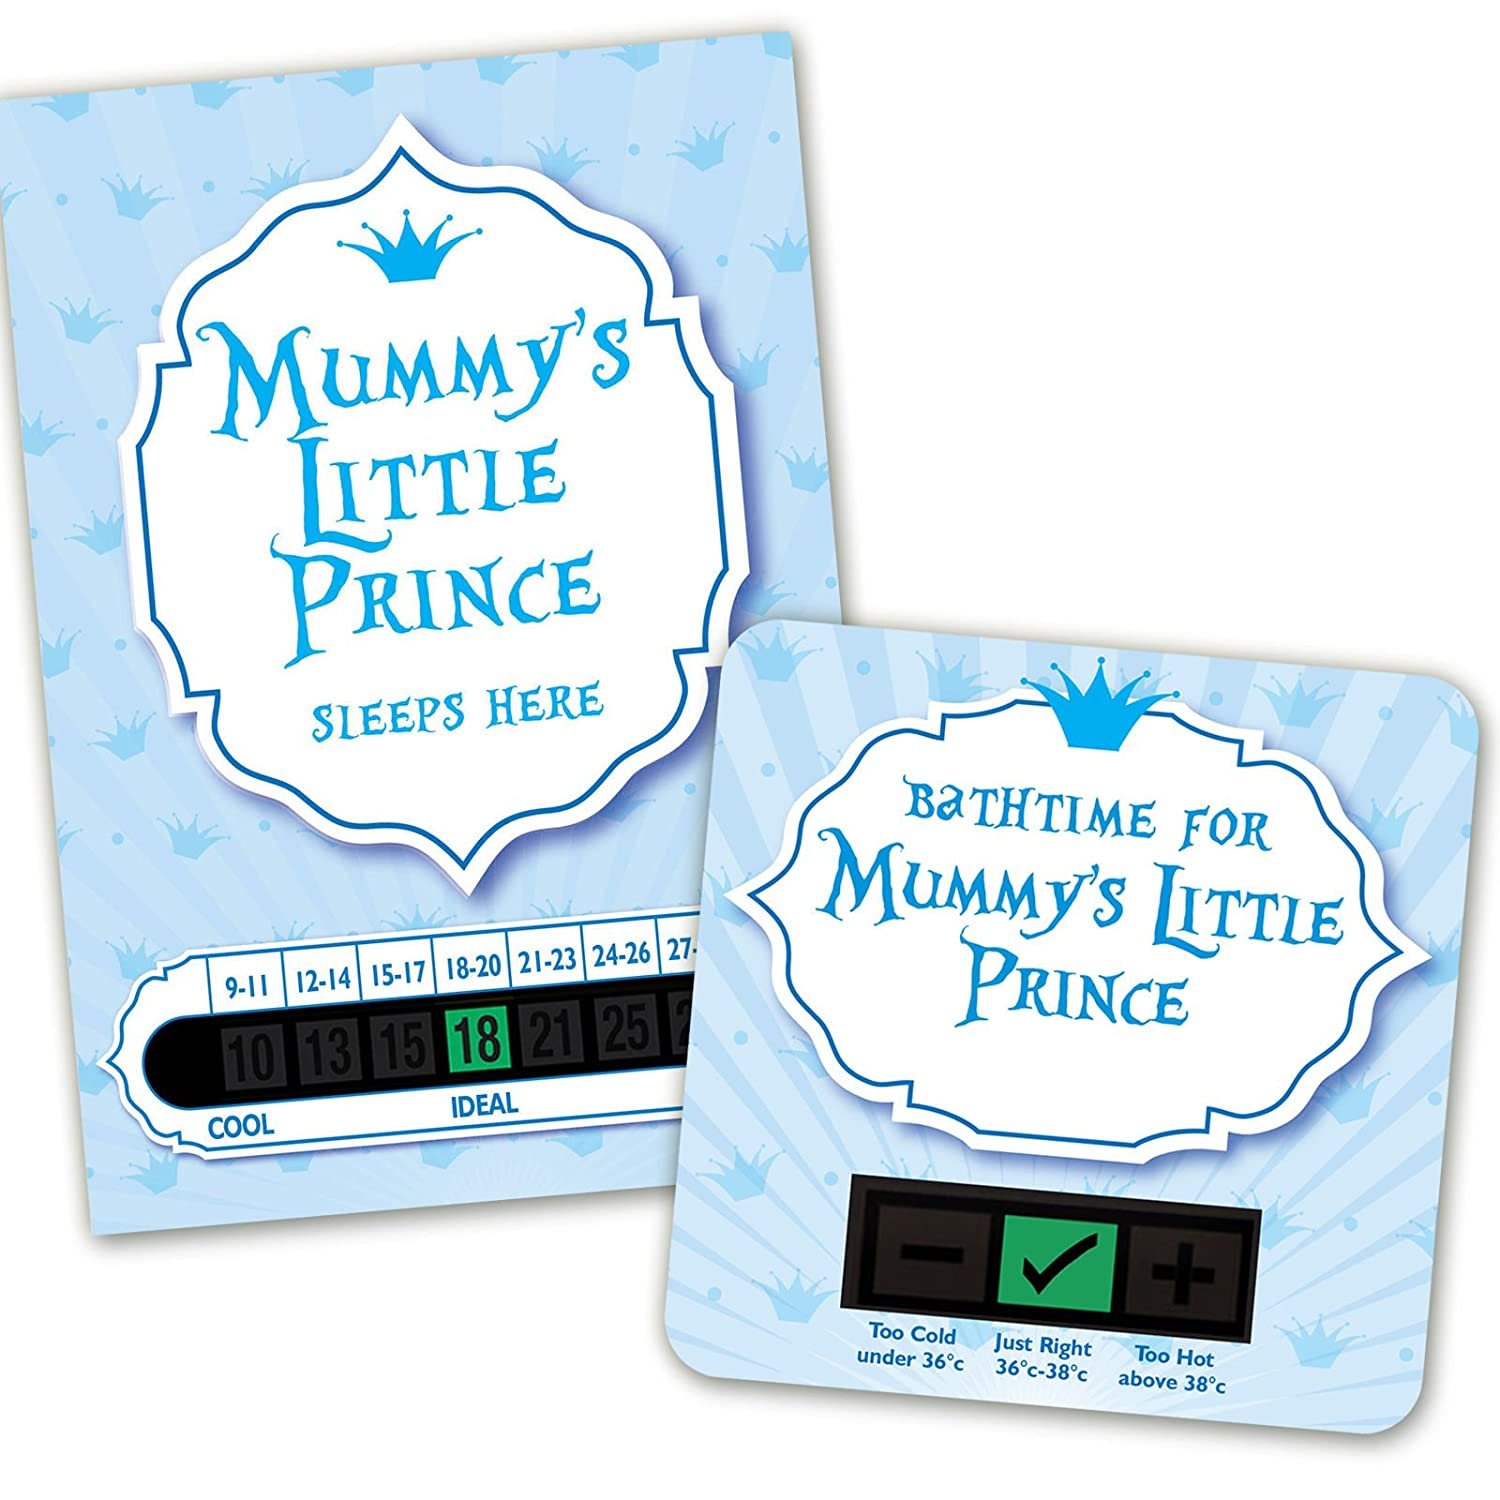 Mummys Little Prince room thermometer and bath thermometer set Funky Monkey House